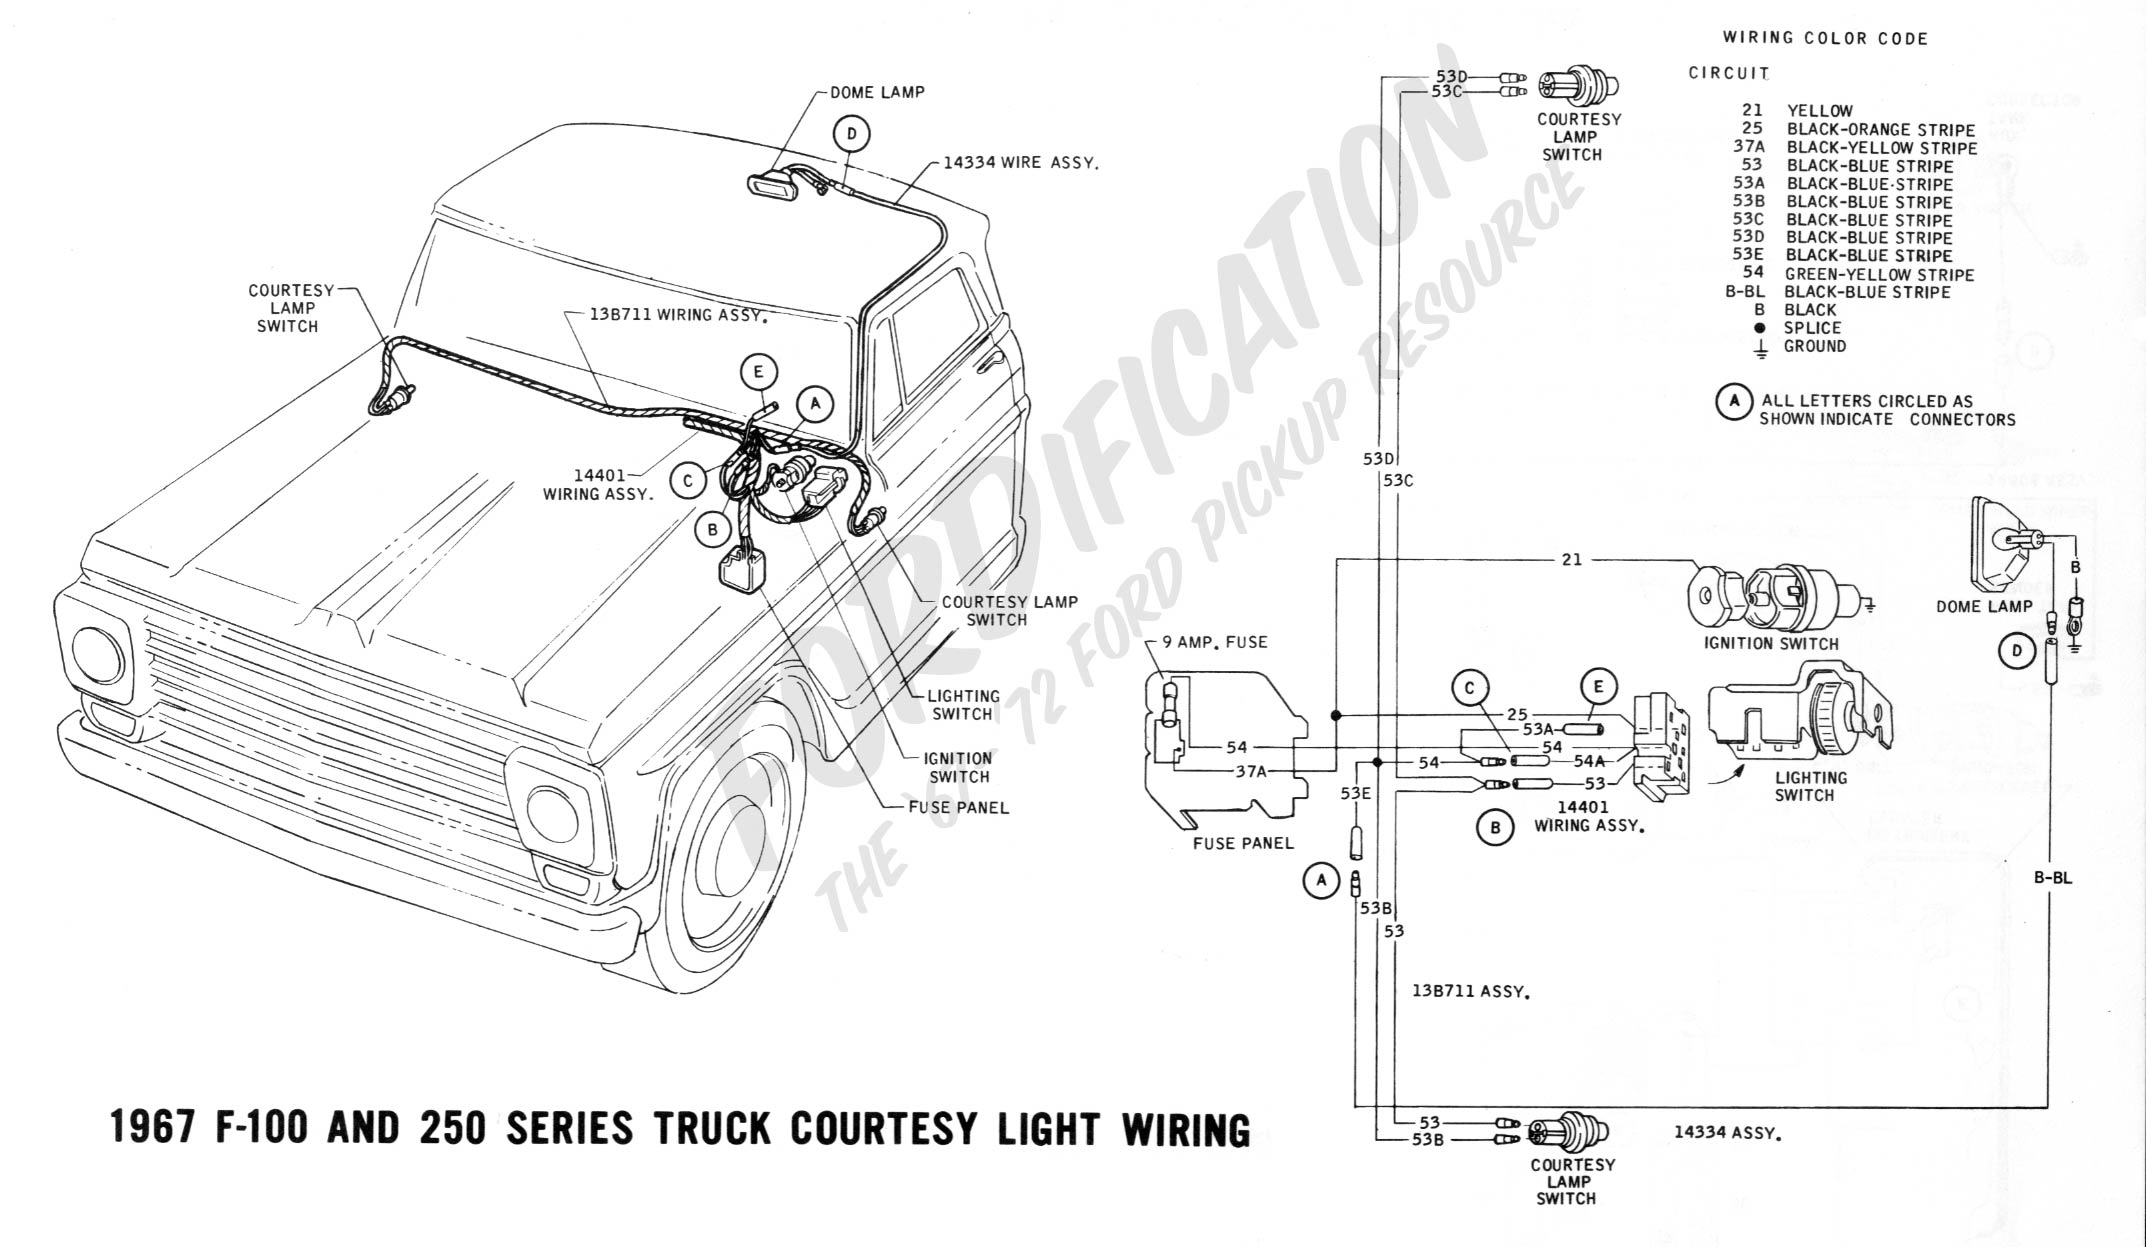 64 ford f100 solenoid wiring wiring diagram detailed 64 ford f100 solenoid wiring wiring diagram ford f100 exhaust system 64 ford f100 solenoid wiring